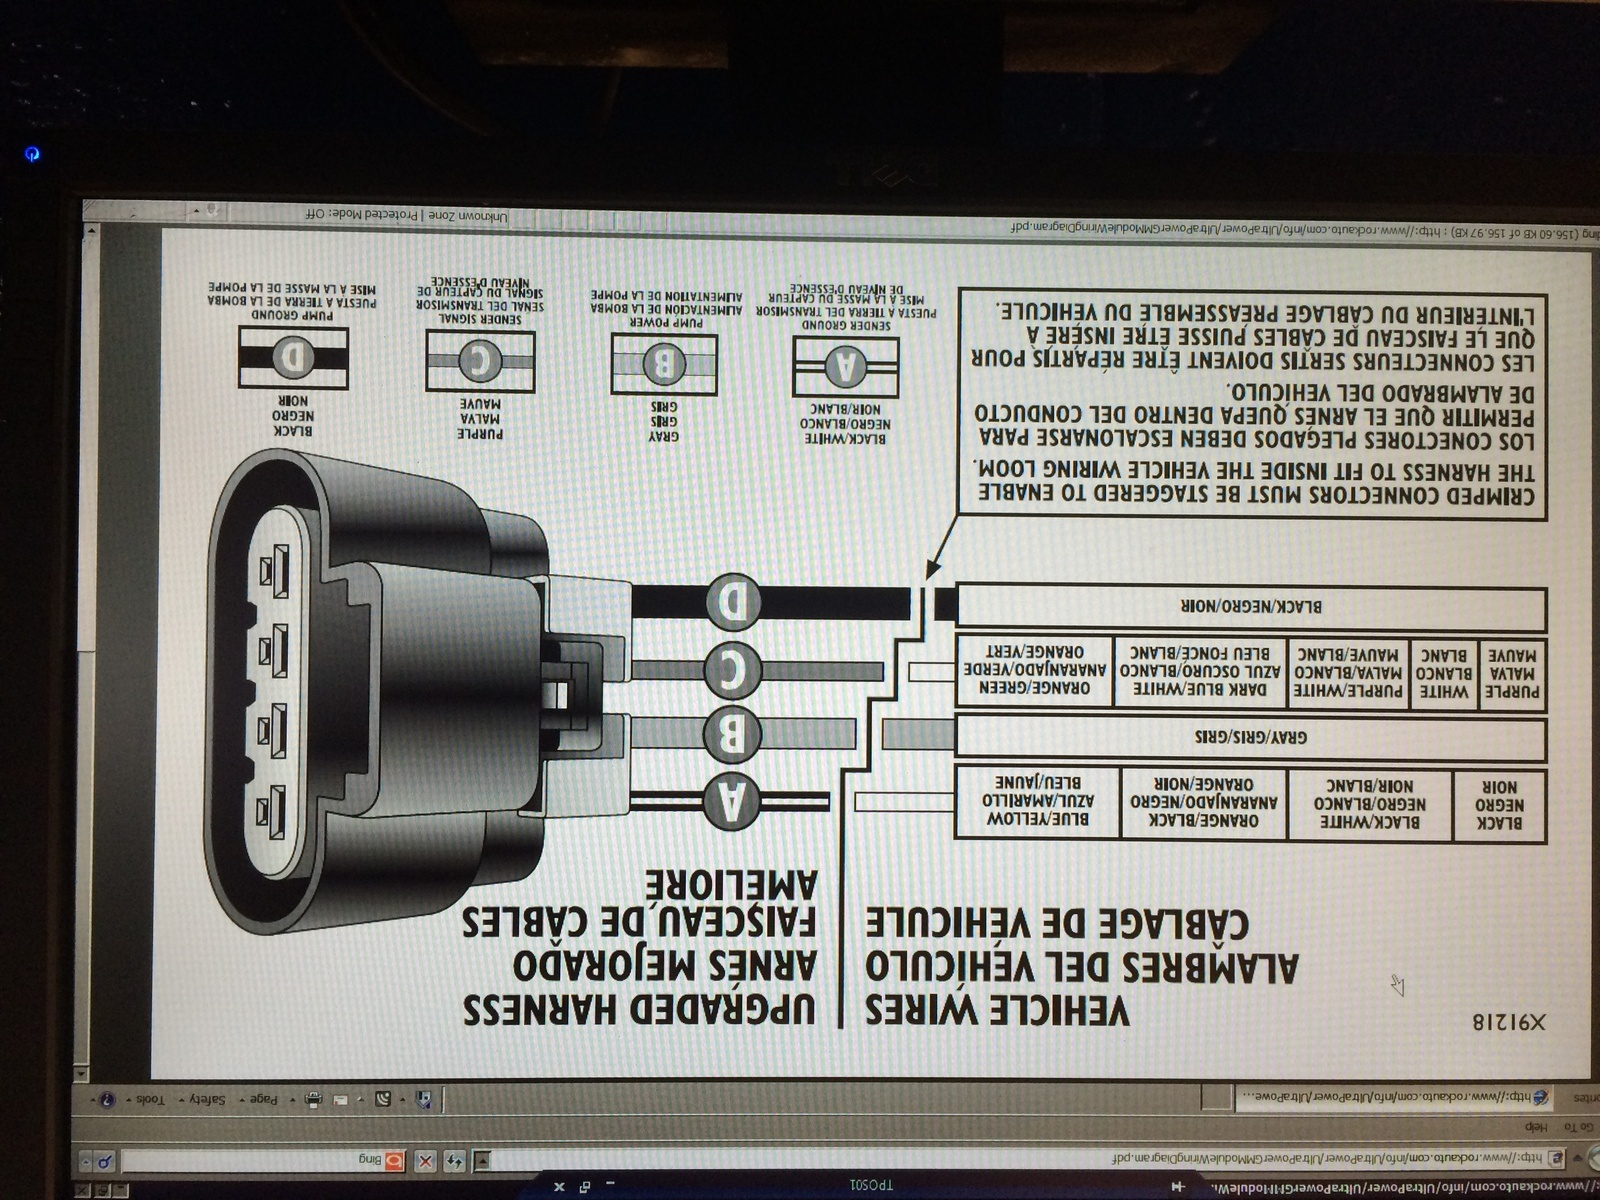 1990 f250 fuel pump wiring diagram 1990 image gmc sierra 1500 questions fuel pump not engaging on 1998 gmc on 1990 f250 fuel pump